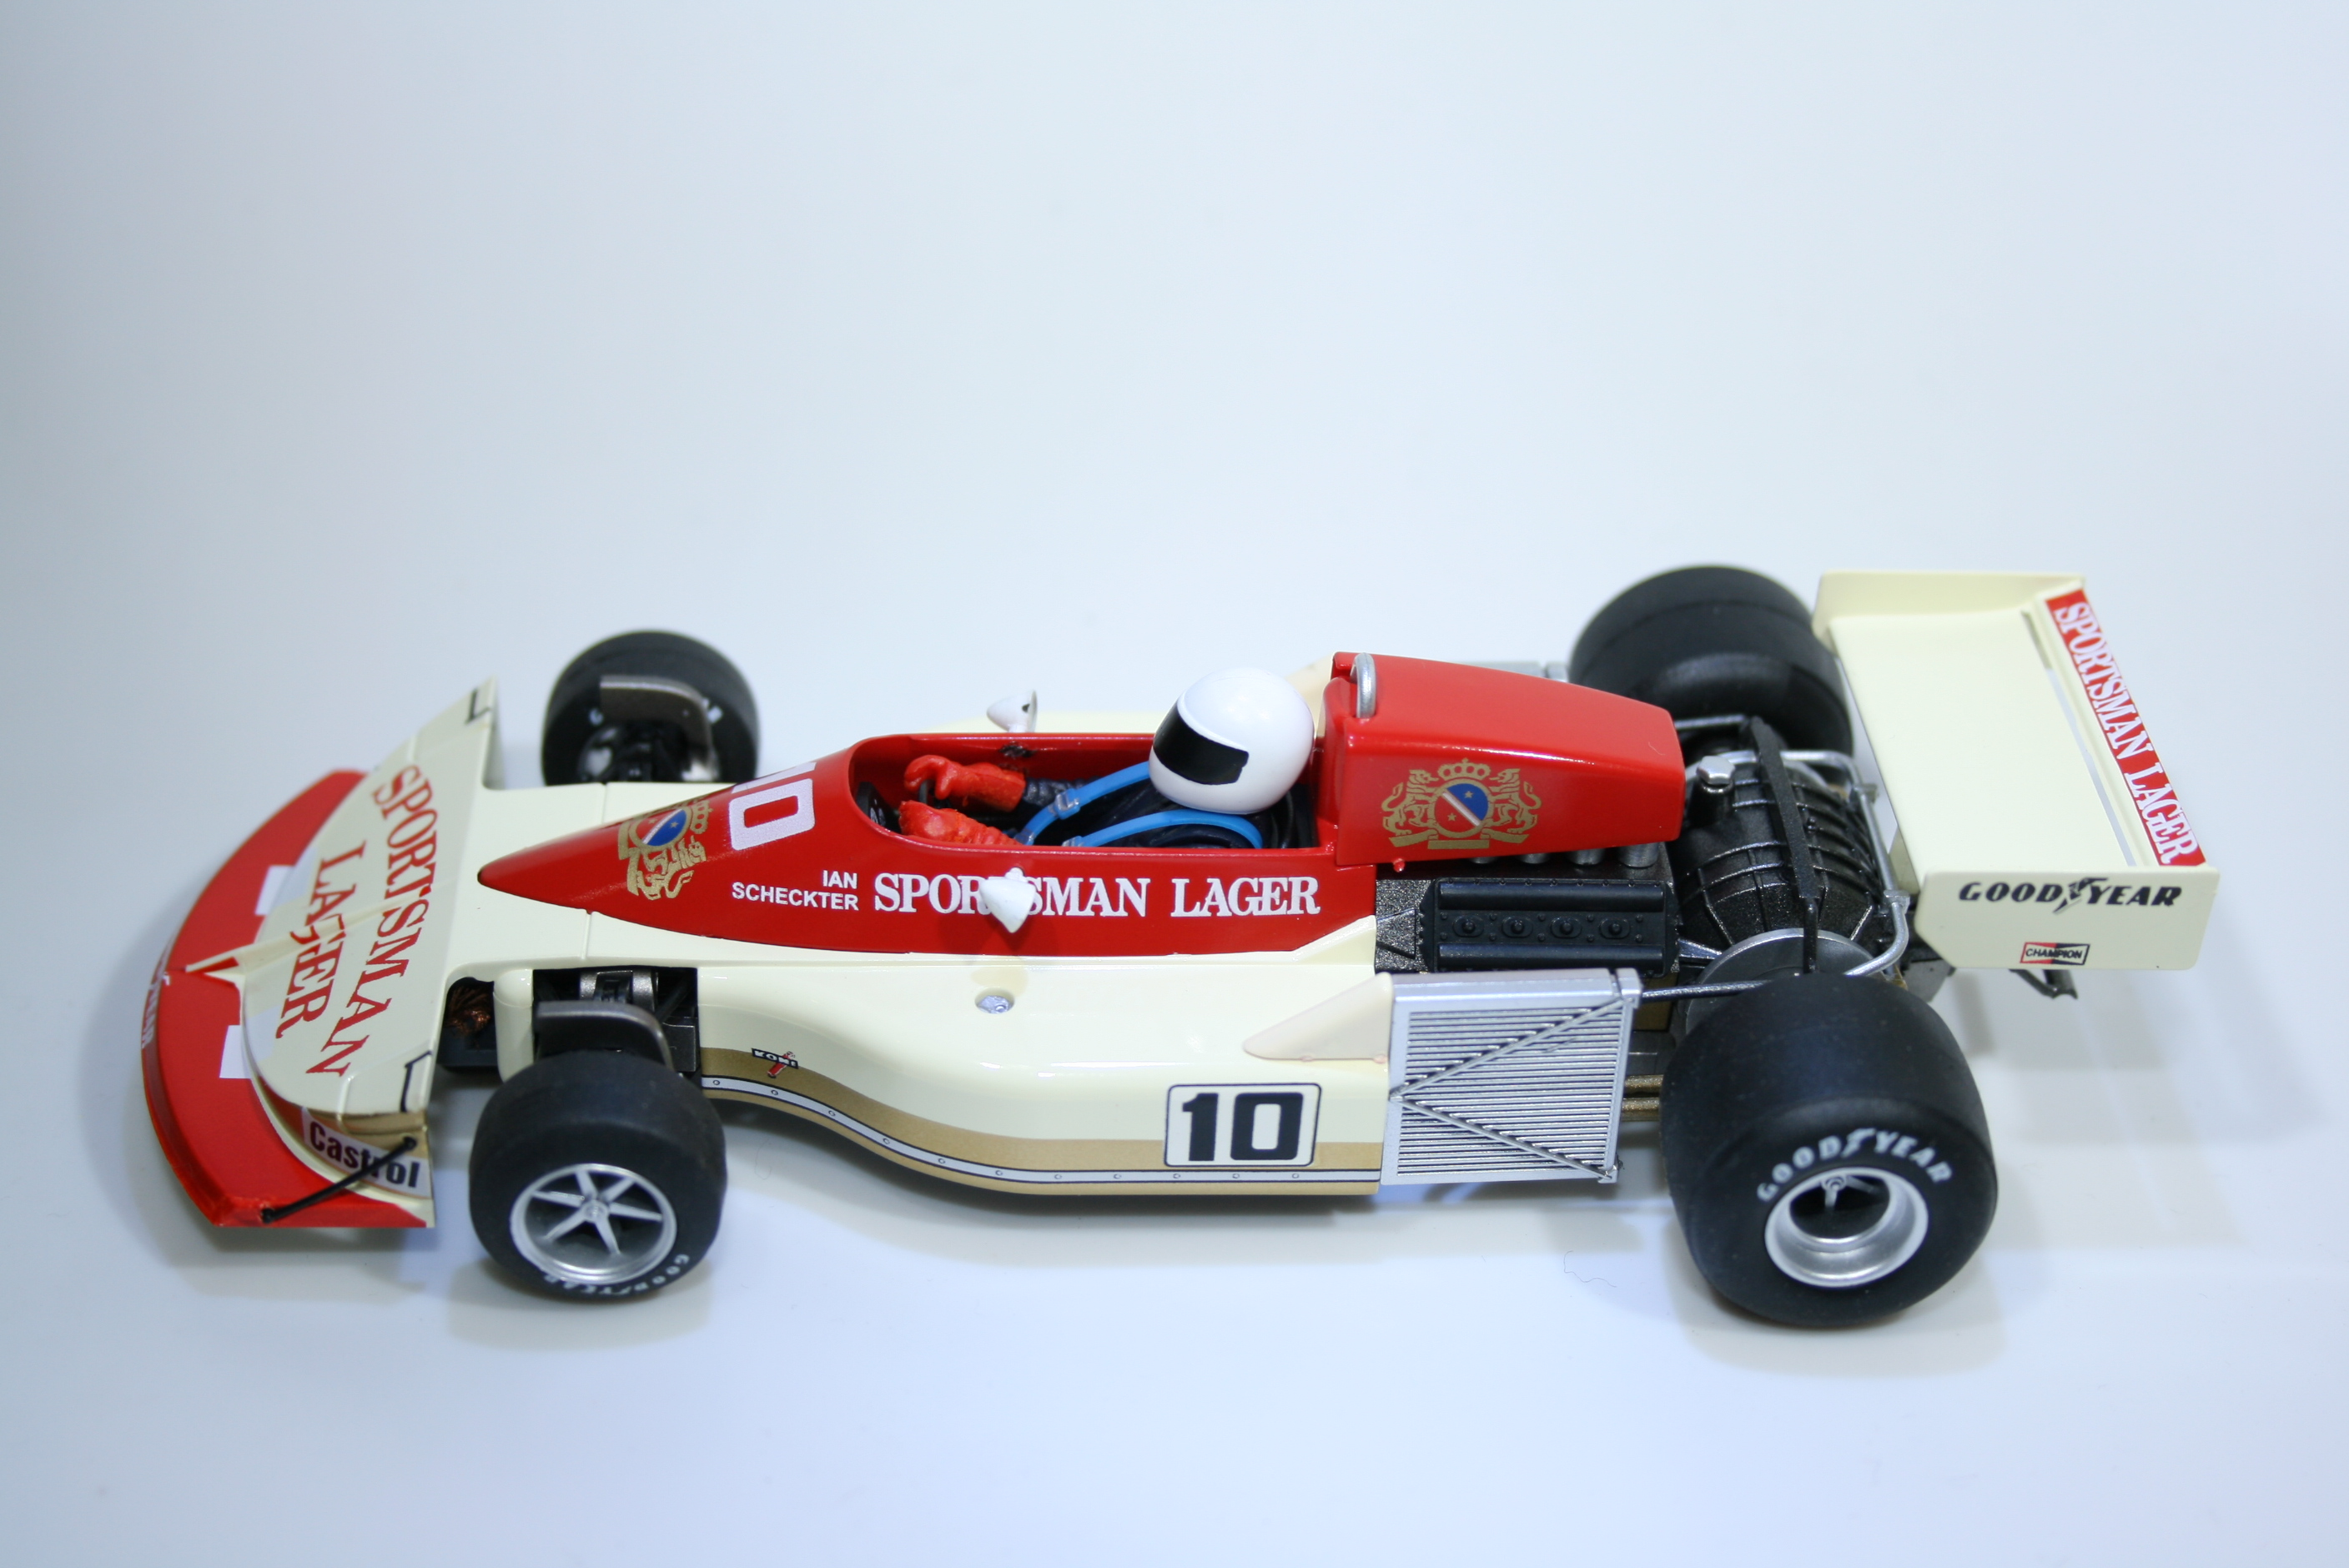 774 March 761B 1977 I Scheckter FLY 045102 2014 Boxed